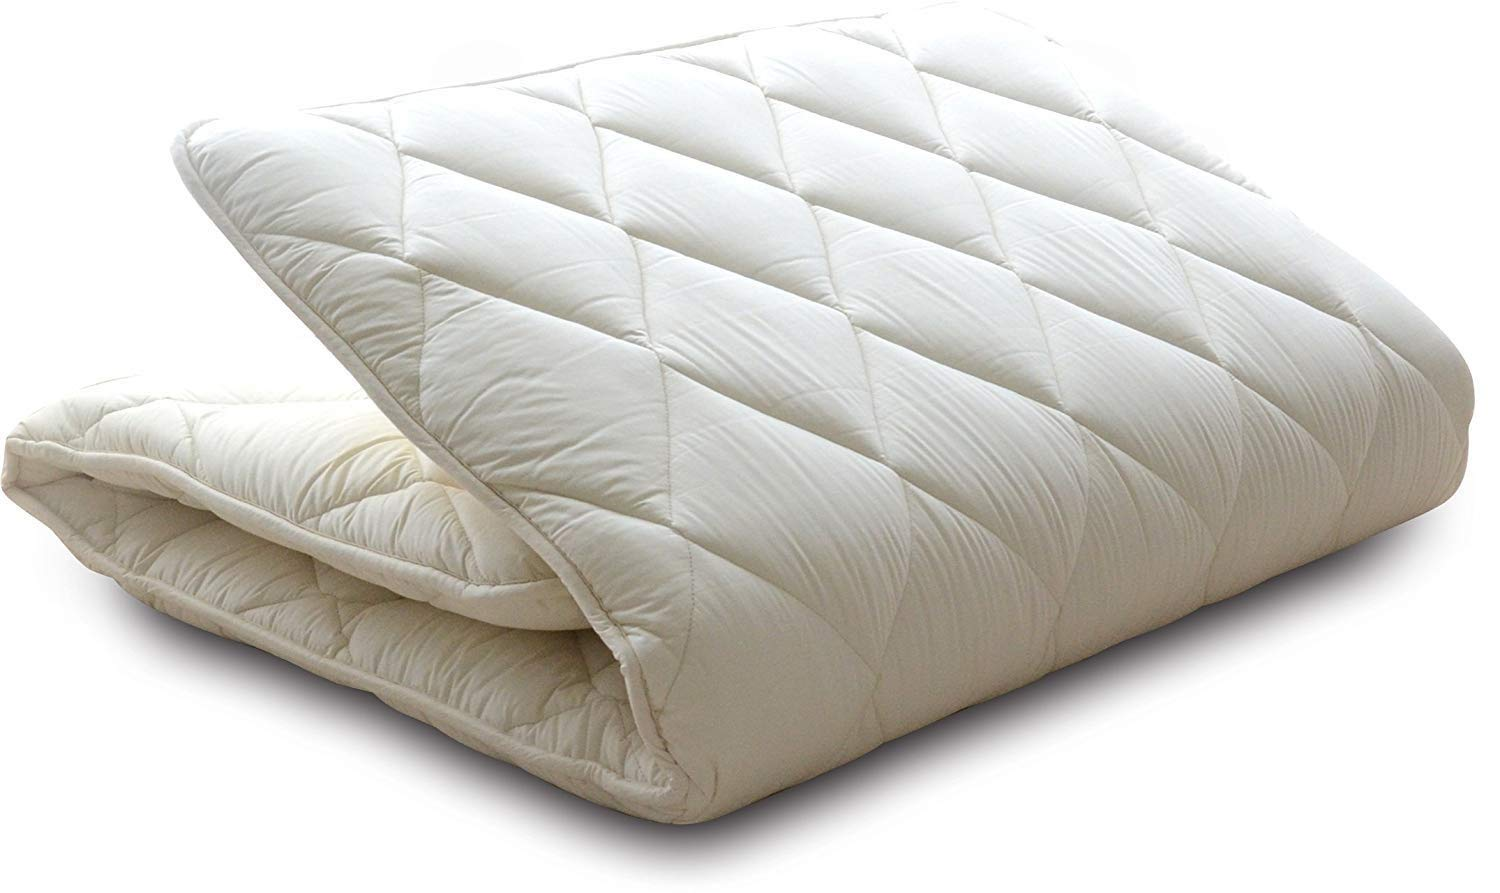 Rolled Single Mattress Floor Mattress Top Brands And Buying Guide For 2019 Snoremagazine